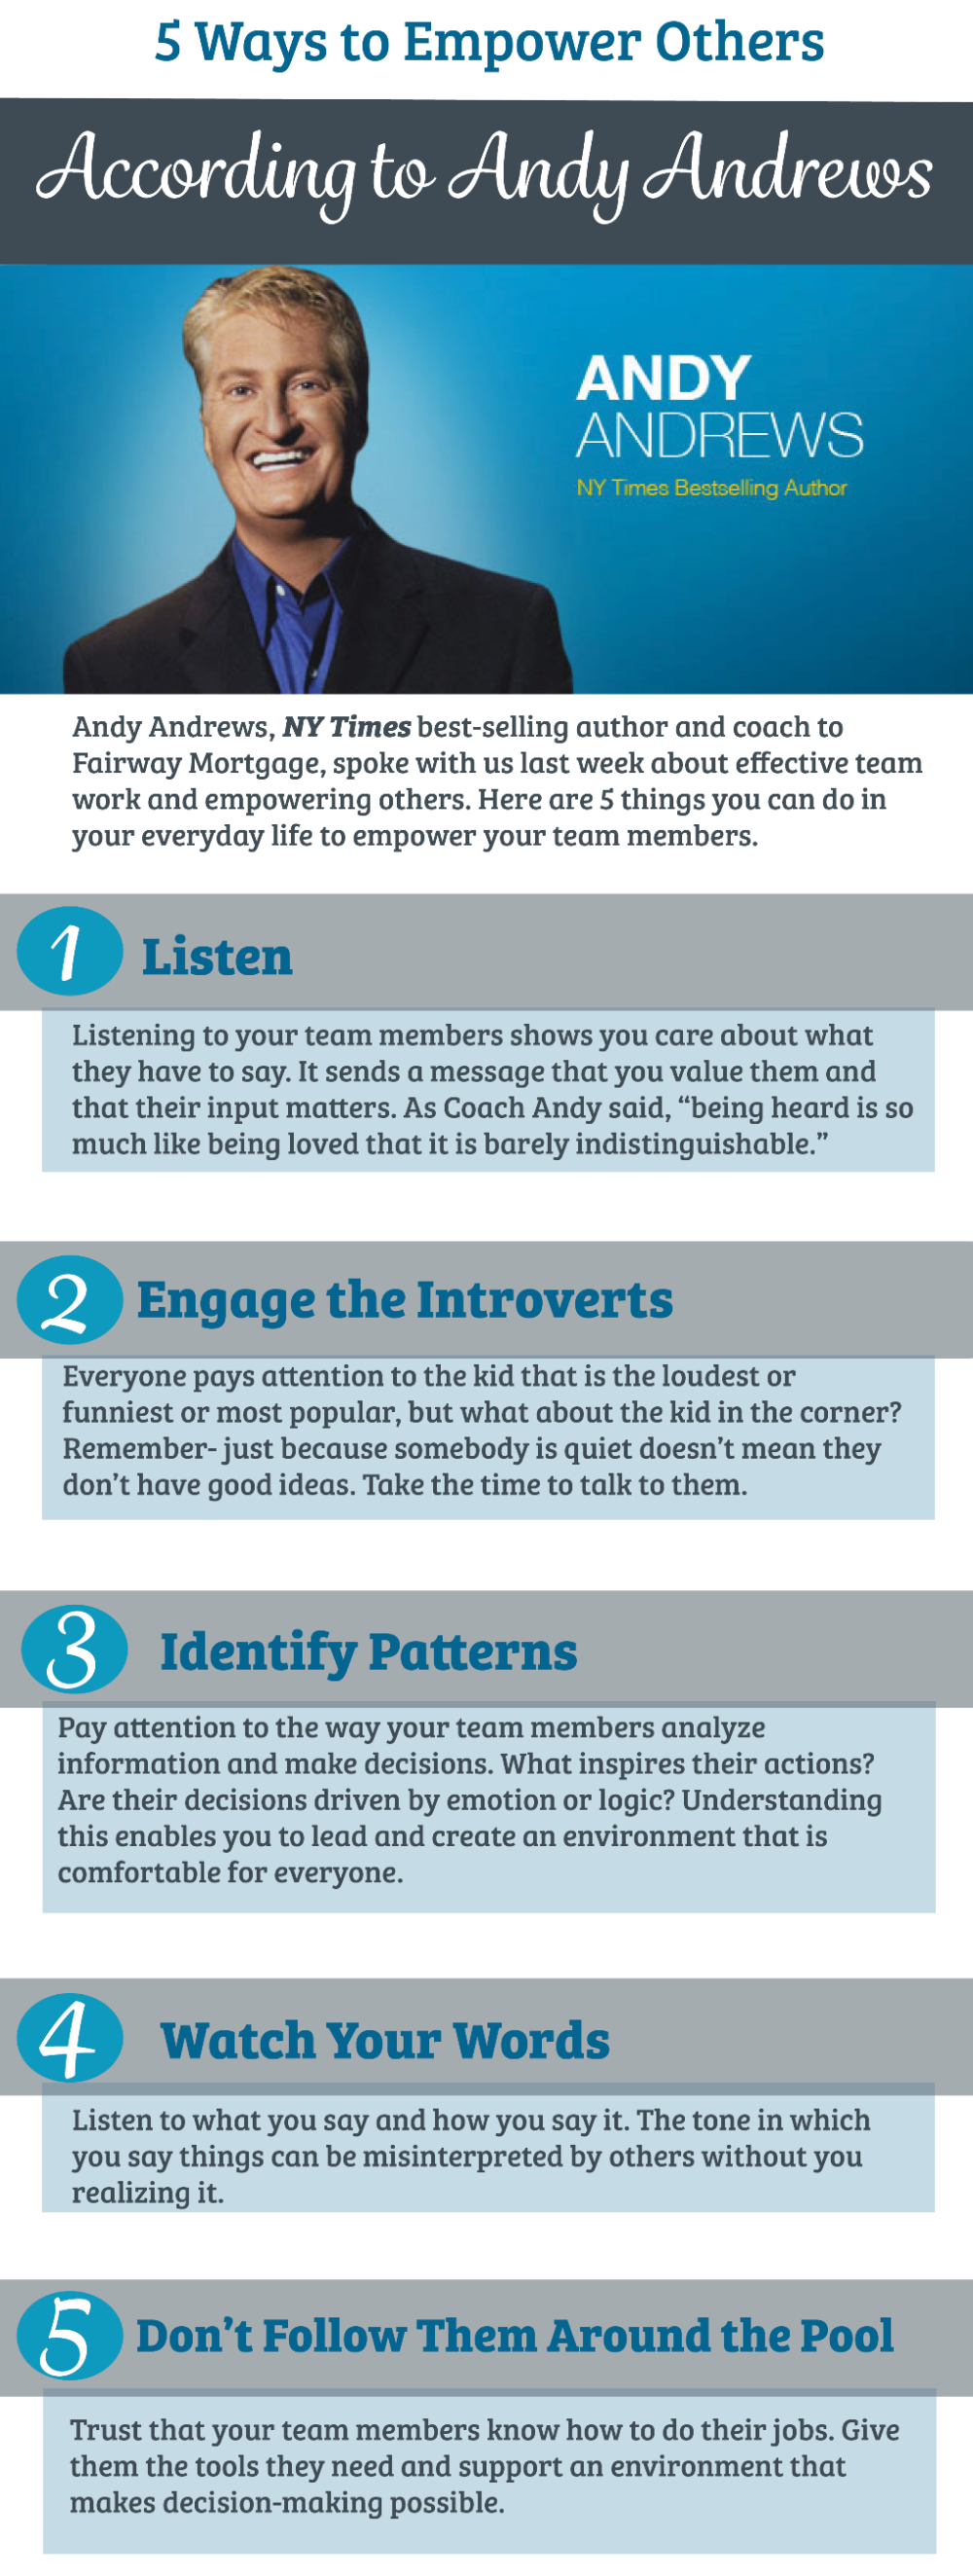 5 Ways to Empower Others